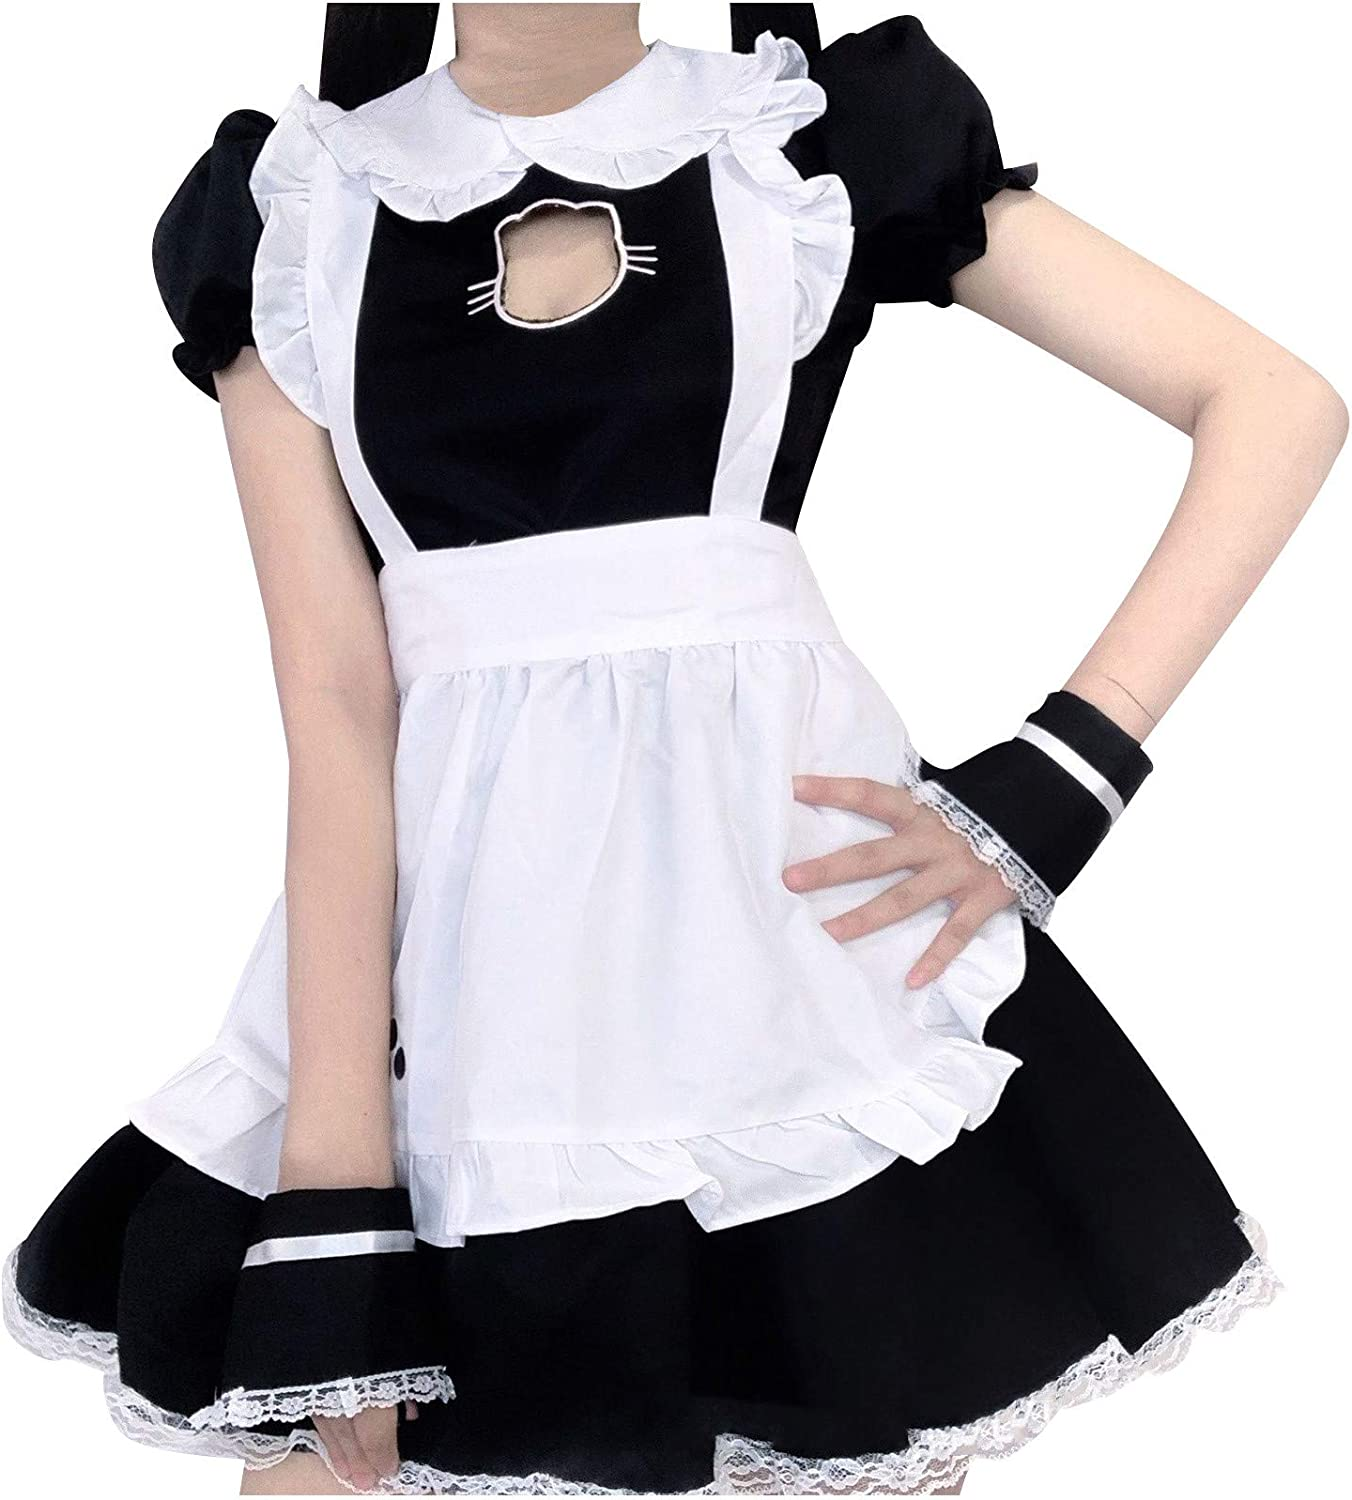 Japanese Anime Sissy Maid 超激安 訳あり商品 Dress Black Lovely Cosplay Outfit